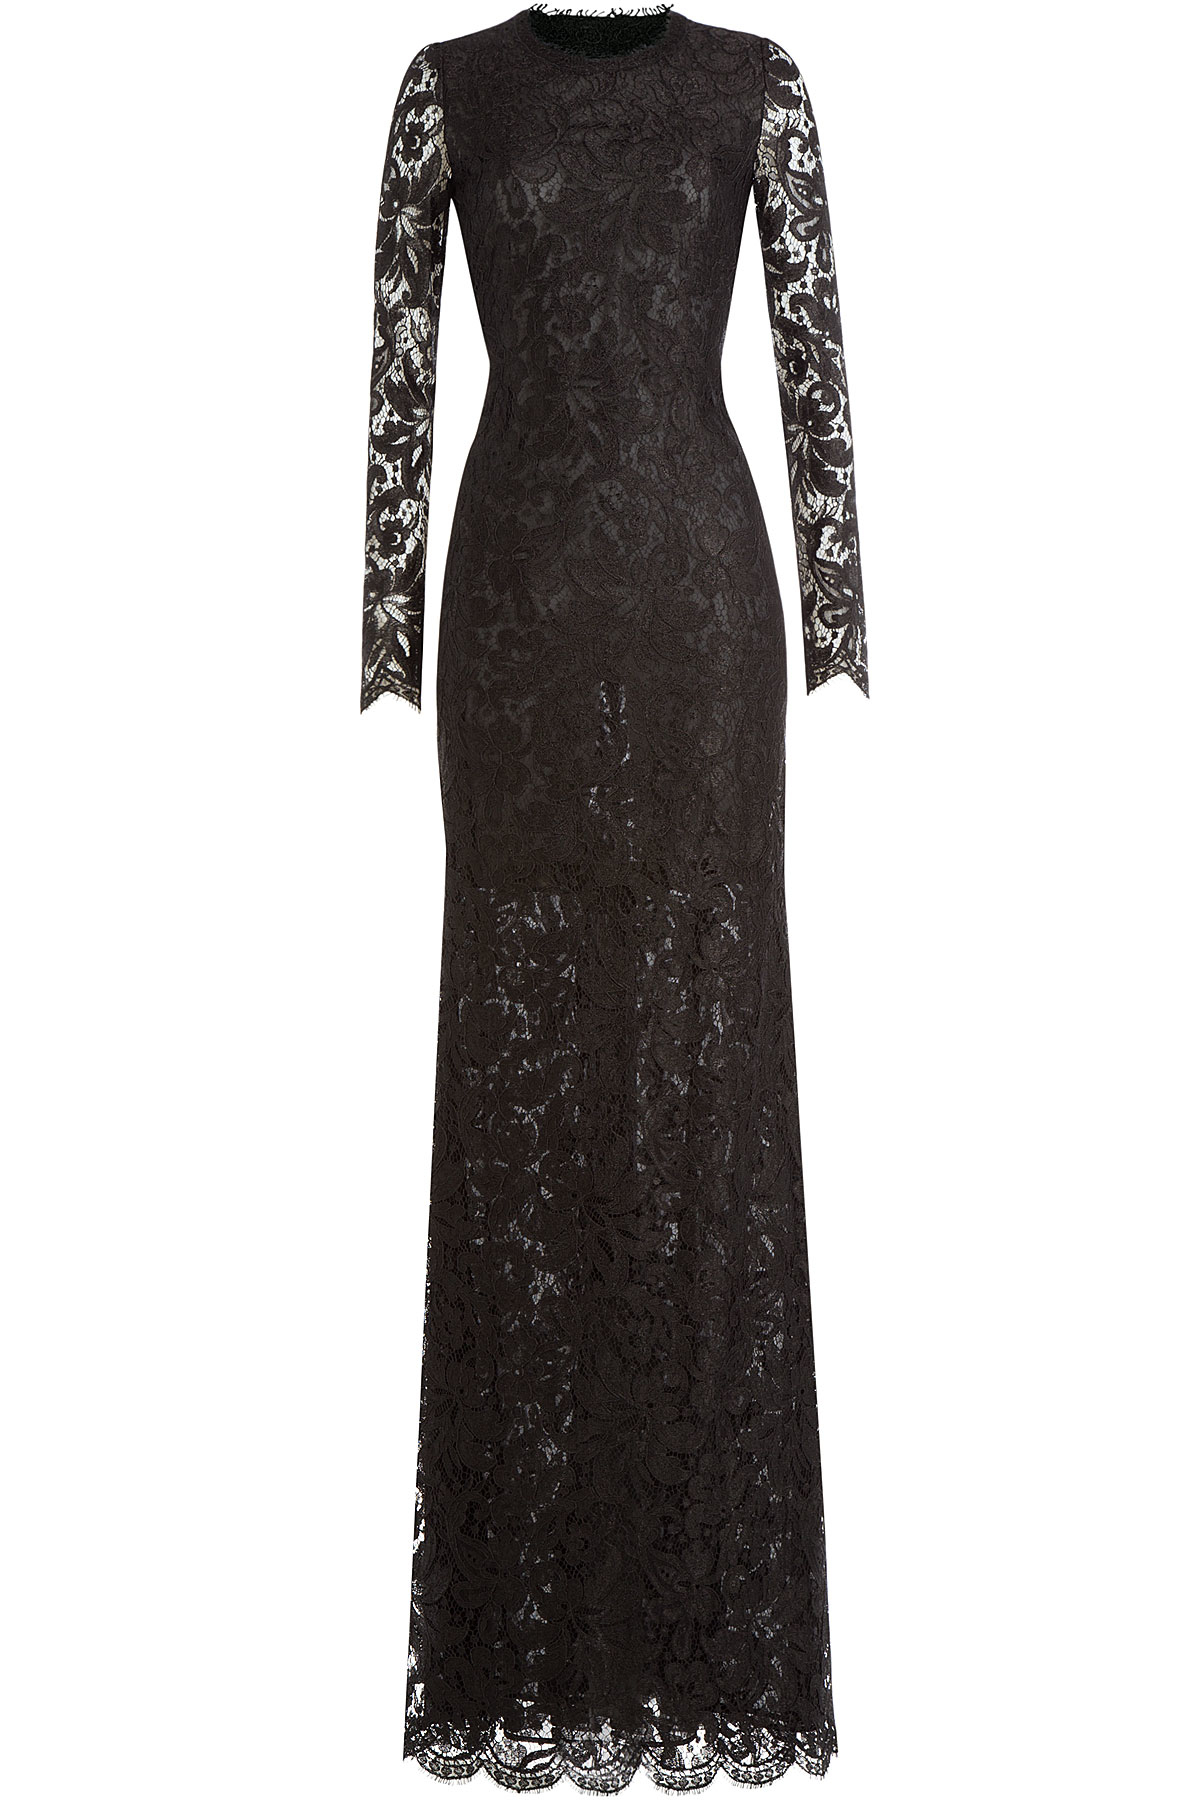 Lyst Emilio Pucci Floor Length Lace Gown Black In Black